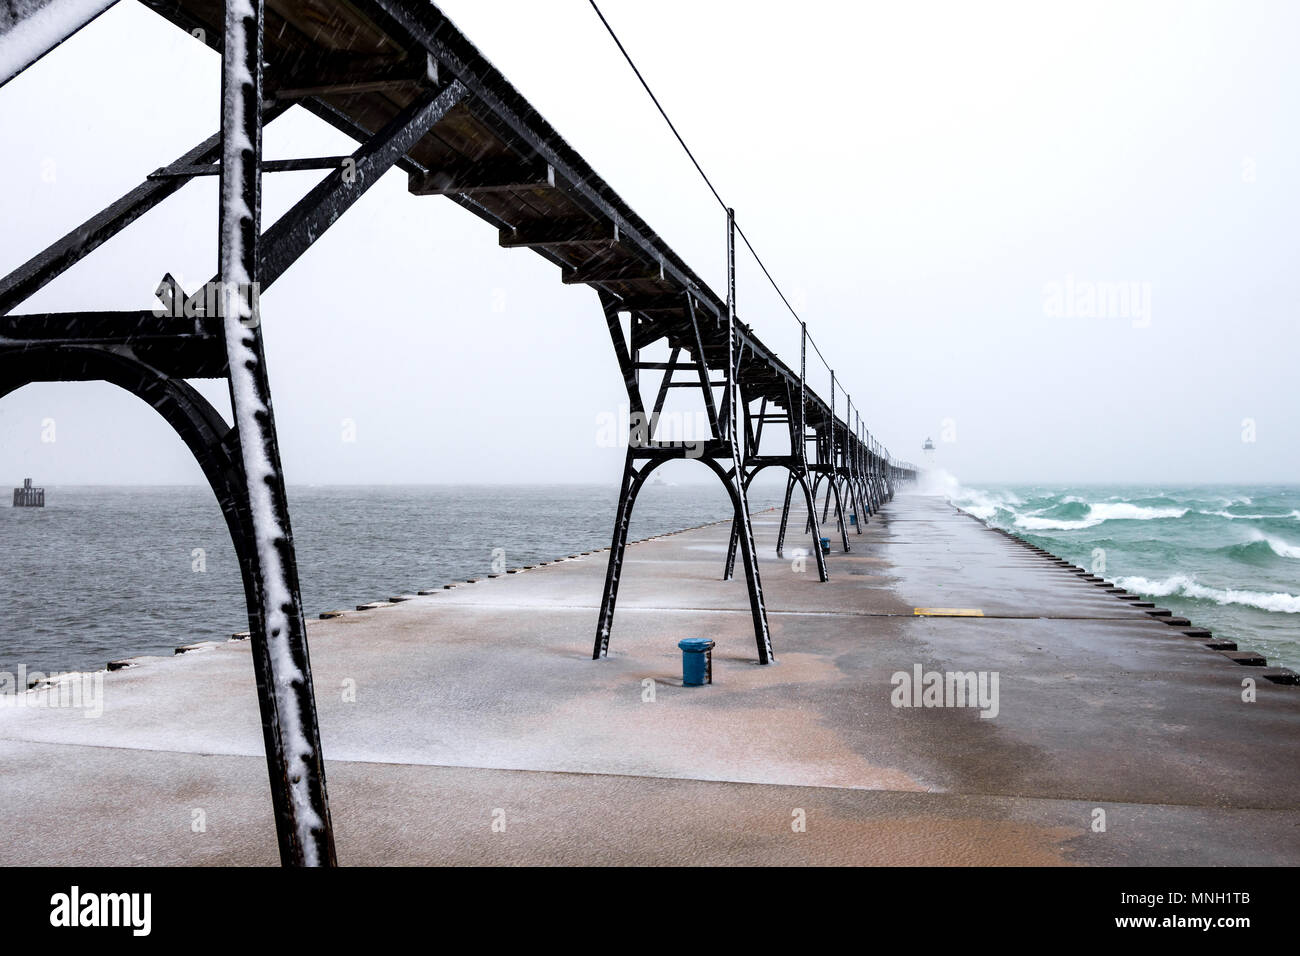 Pier and lighthouse in showstorm, Manistee, Michigan, USA. - Stock Image